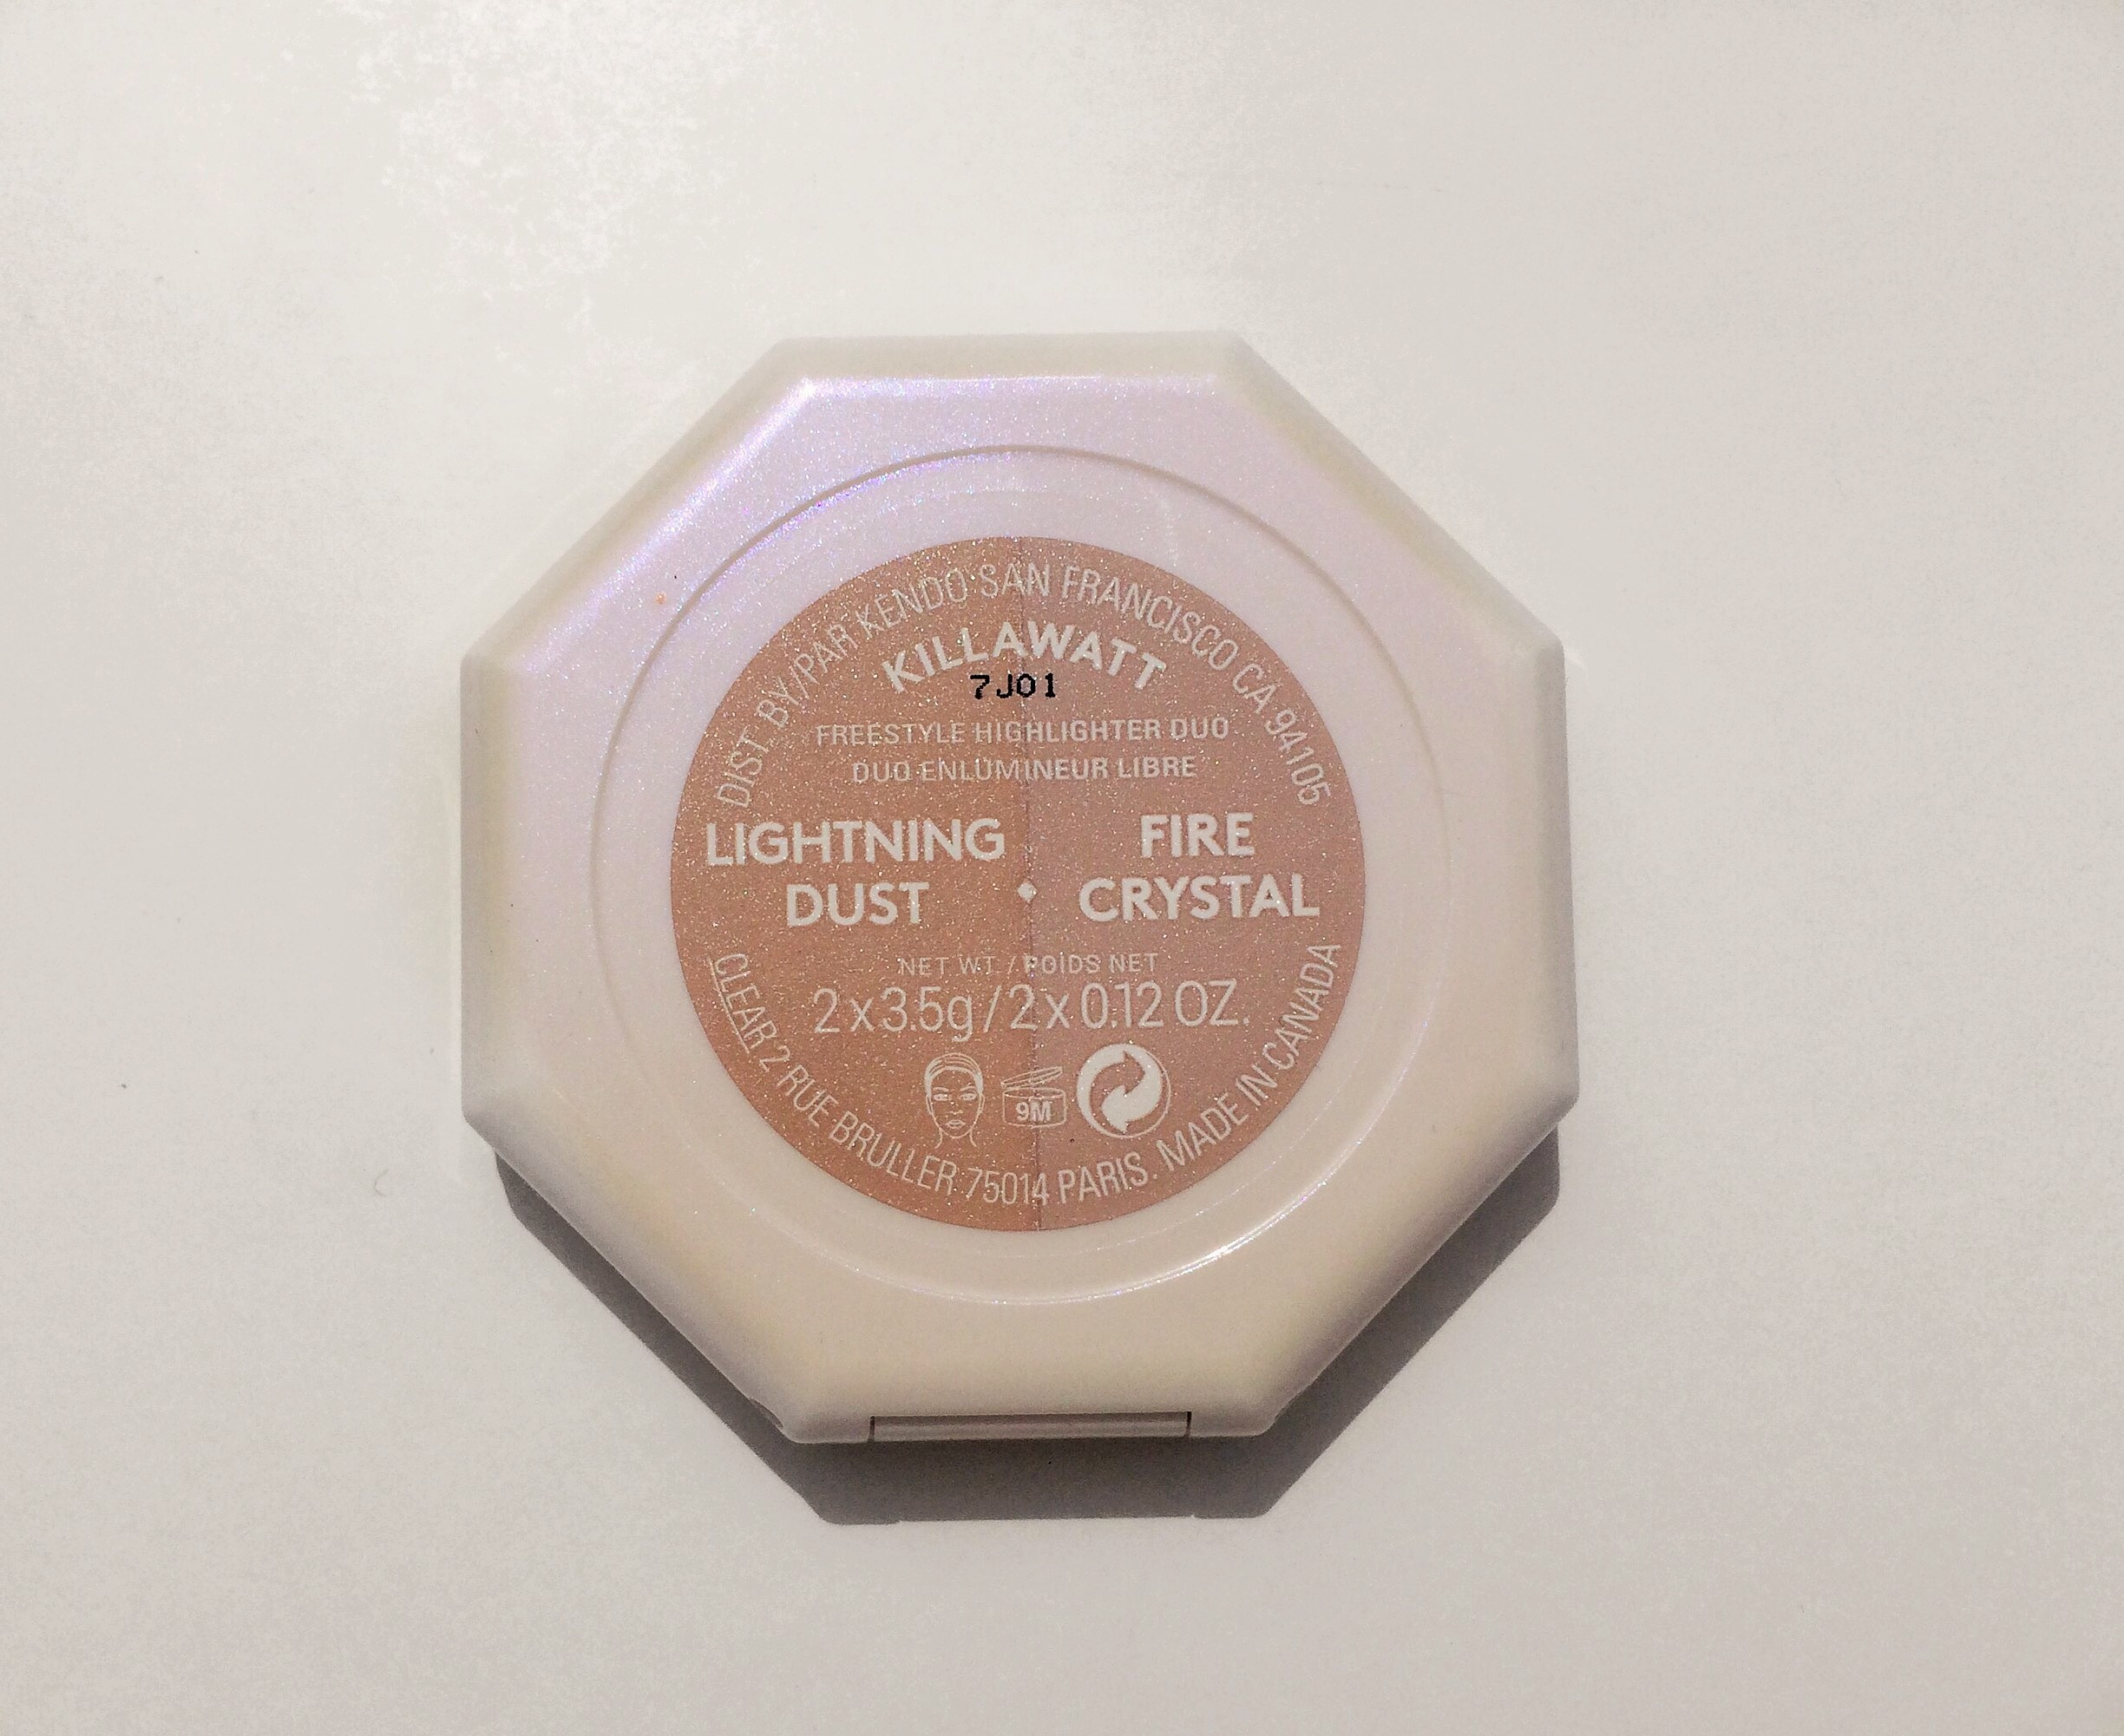 Review Fenty Lightning Dust Fire Crystal Killawatt Freestyle Highlighter Duo (4)